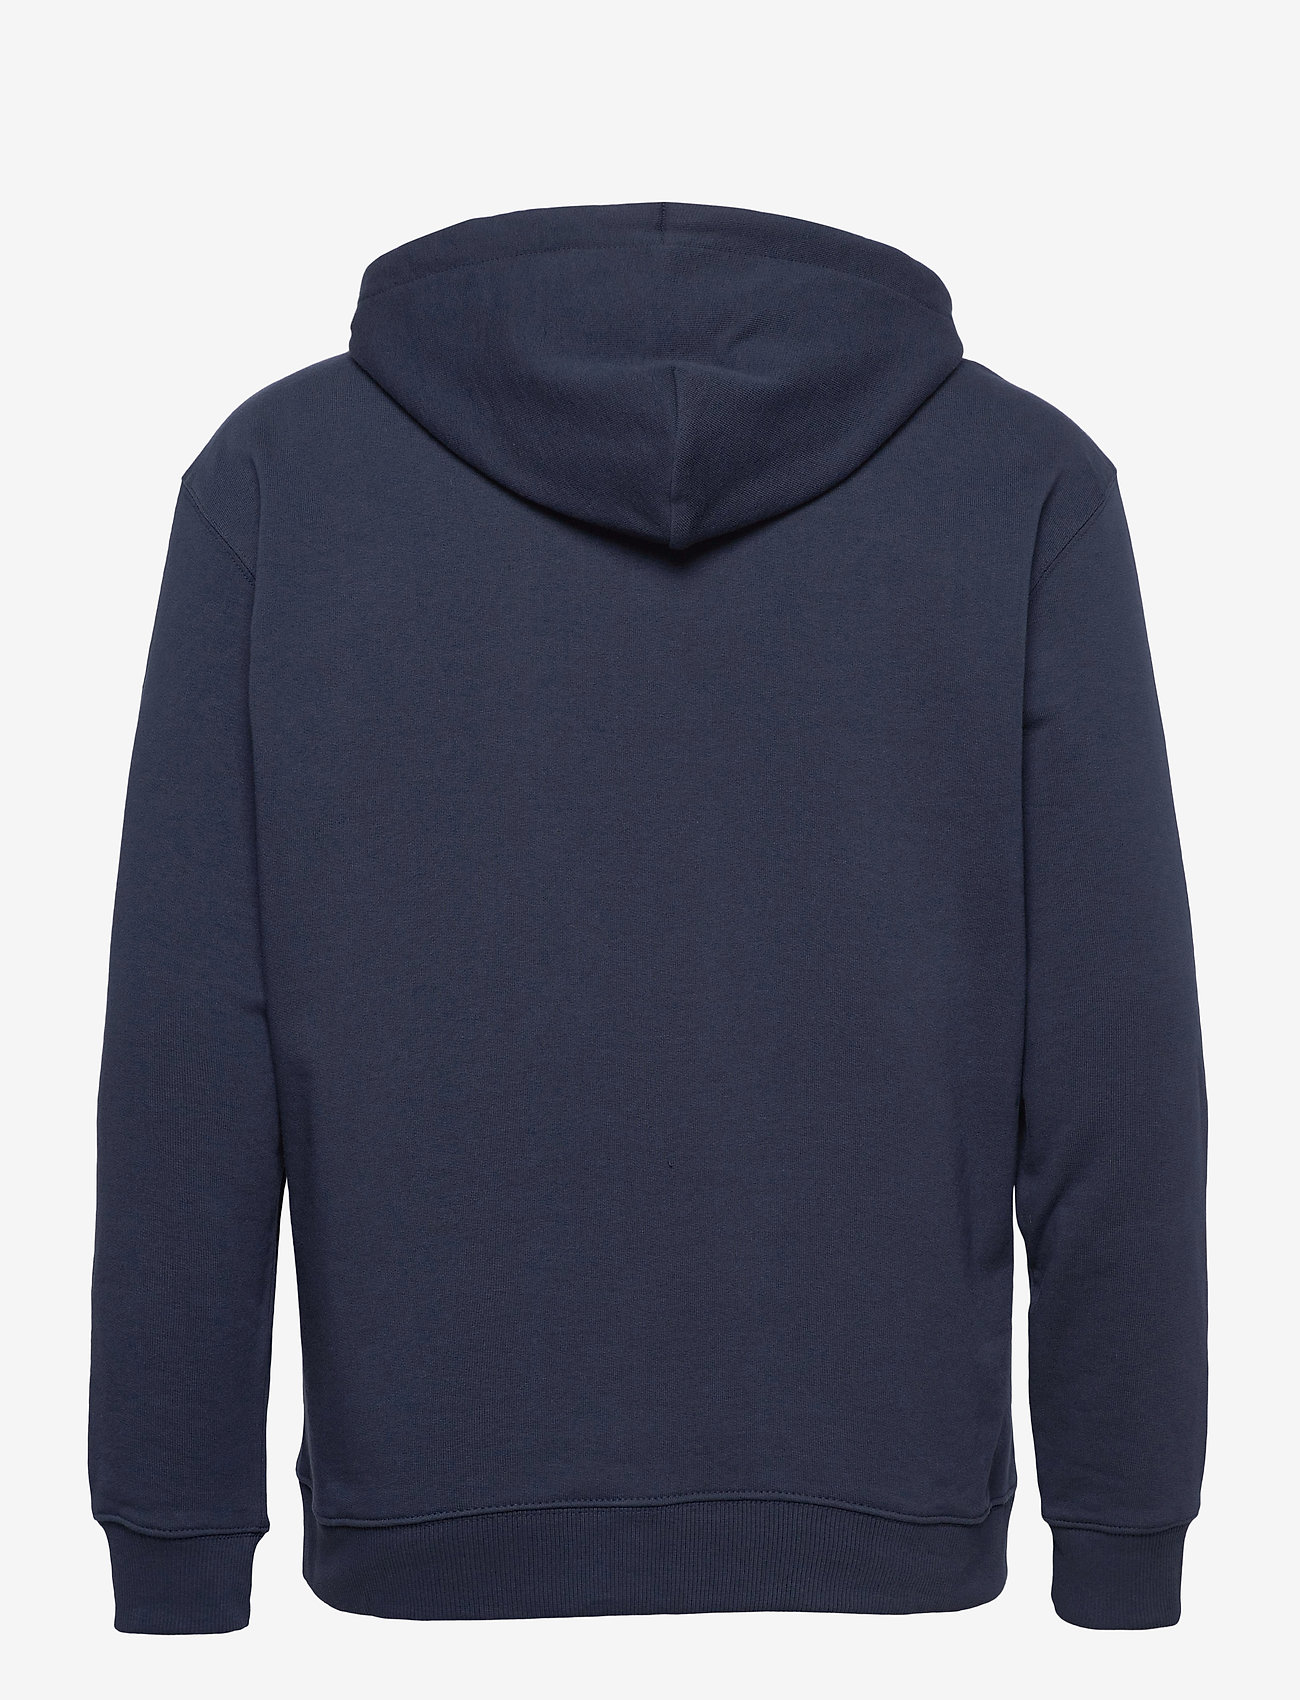 Lee Jeans - BASIC ZIP THROUGH HO - basic sweatshirts - navy - 1